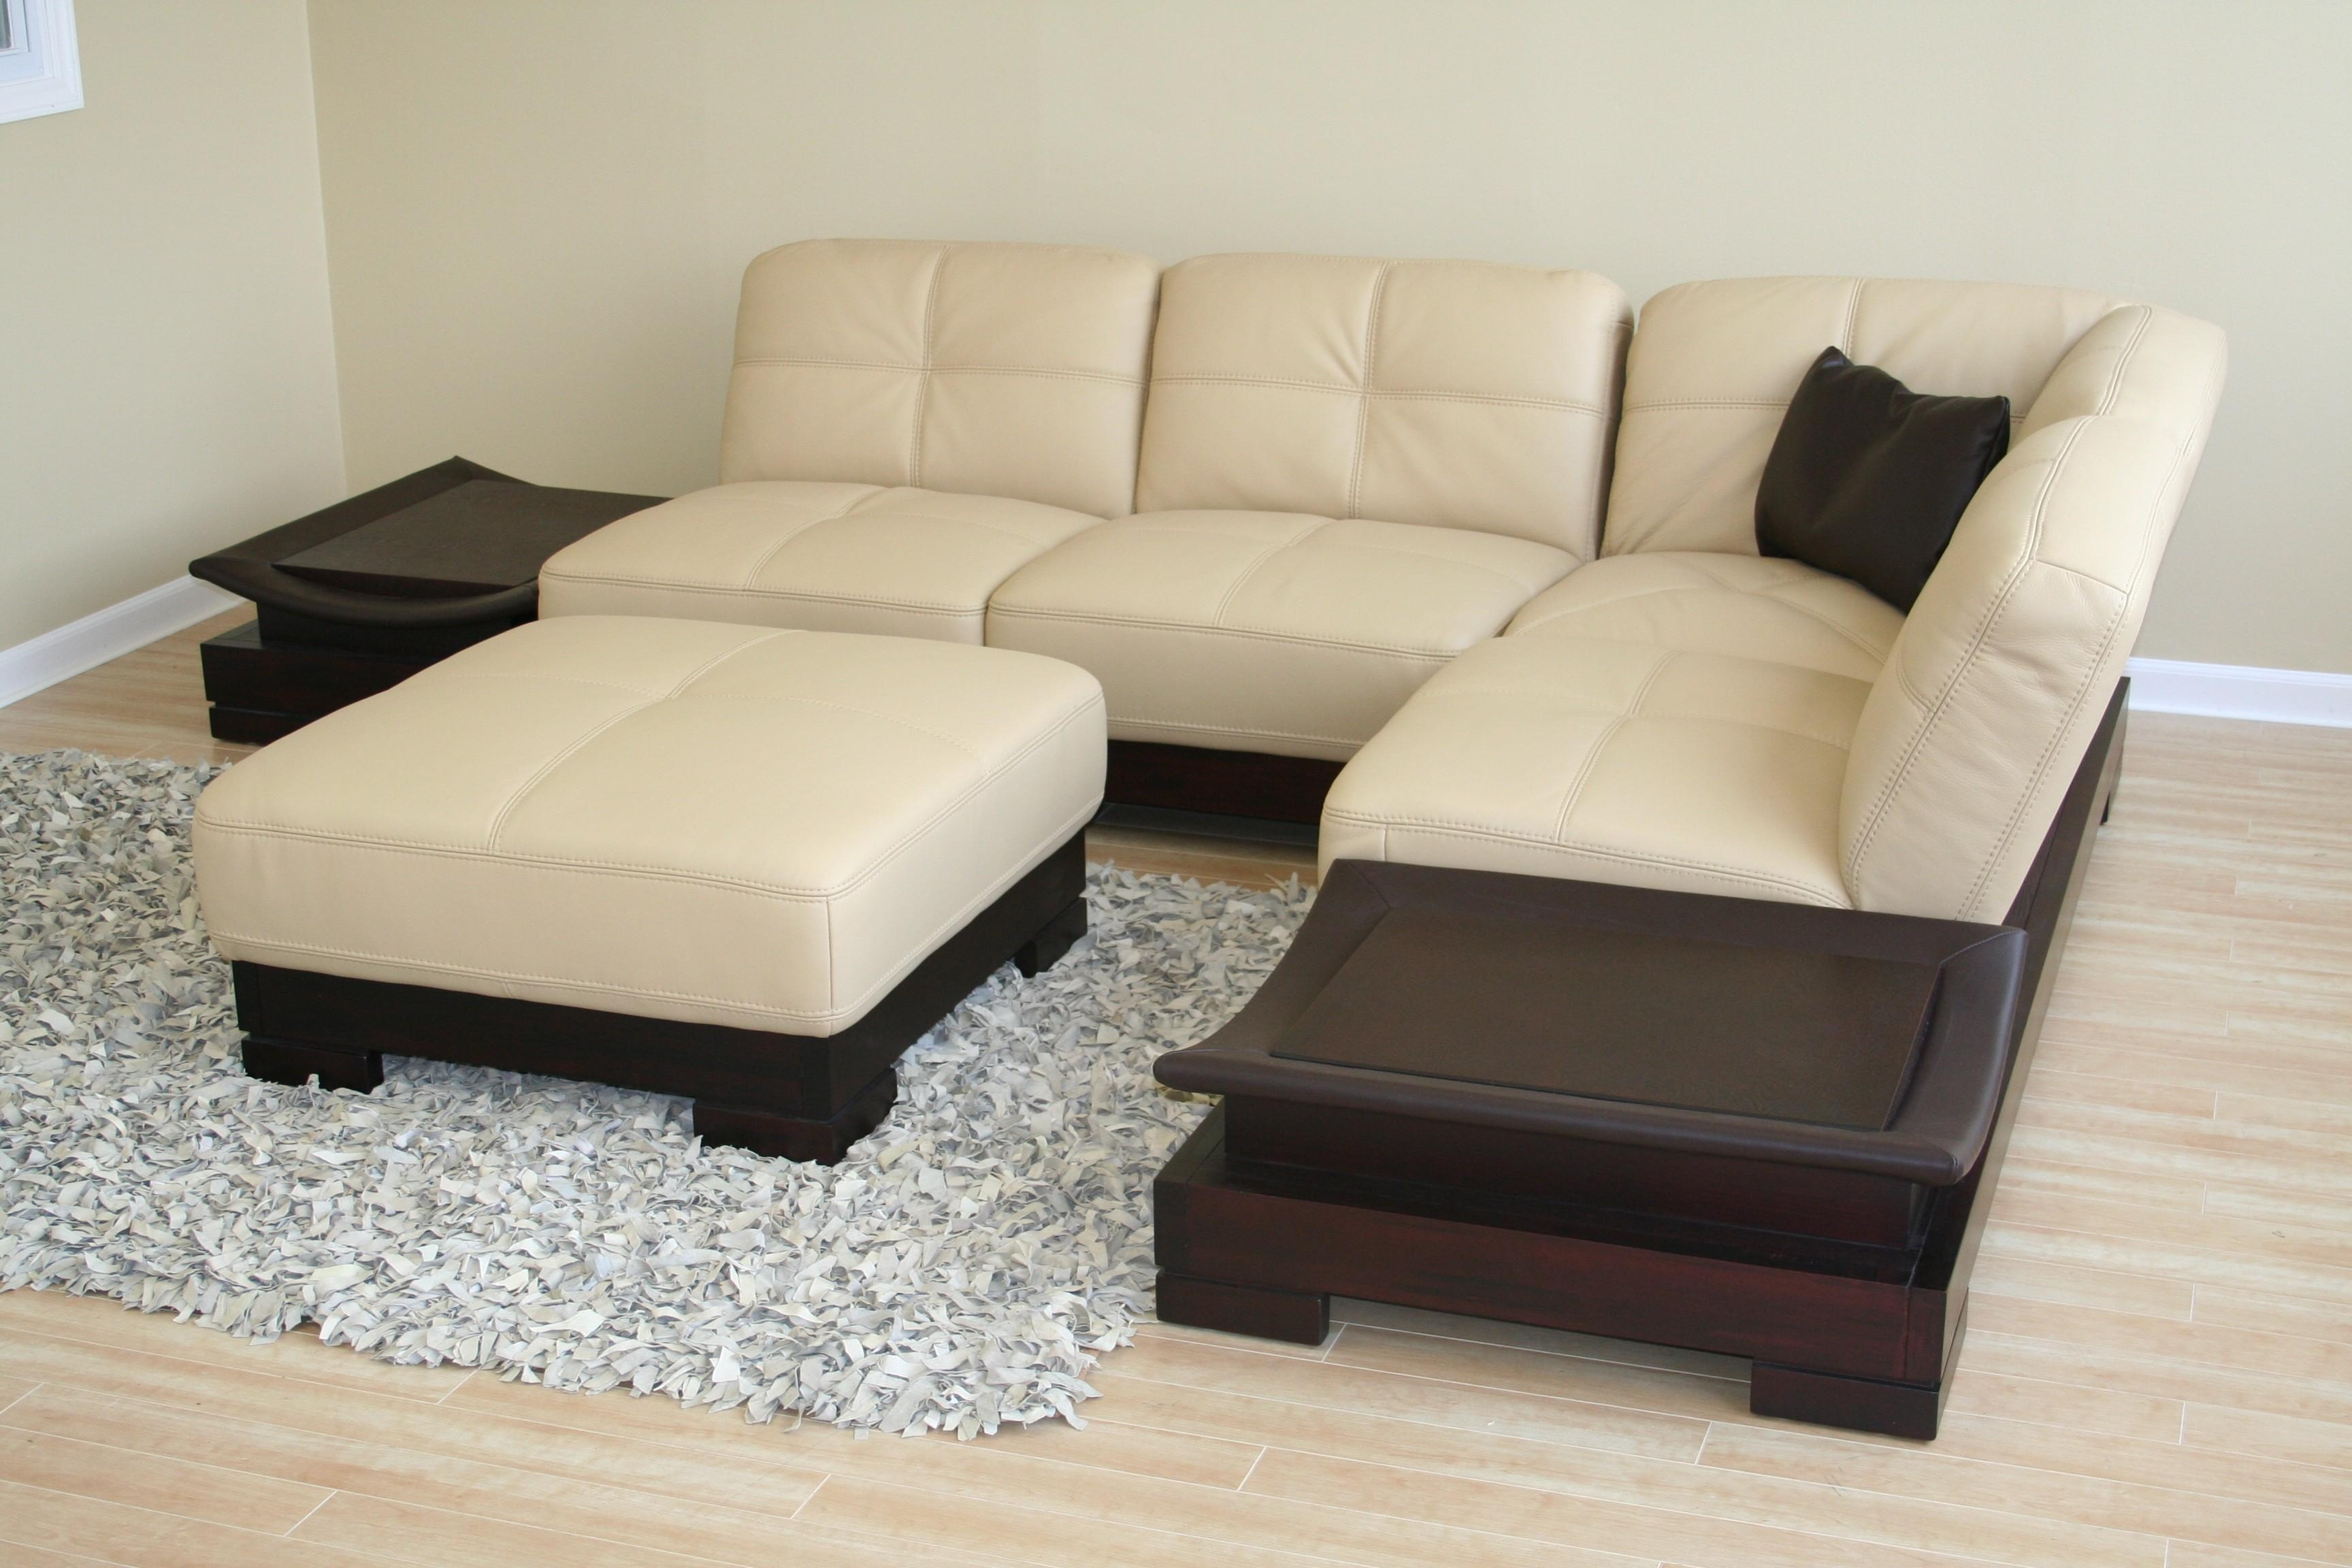 Small Scale Sofa With Chaise | Tehranmix Decoration Within Small Scale Sofas (View 9 of 20)